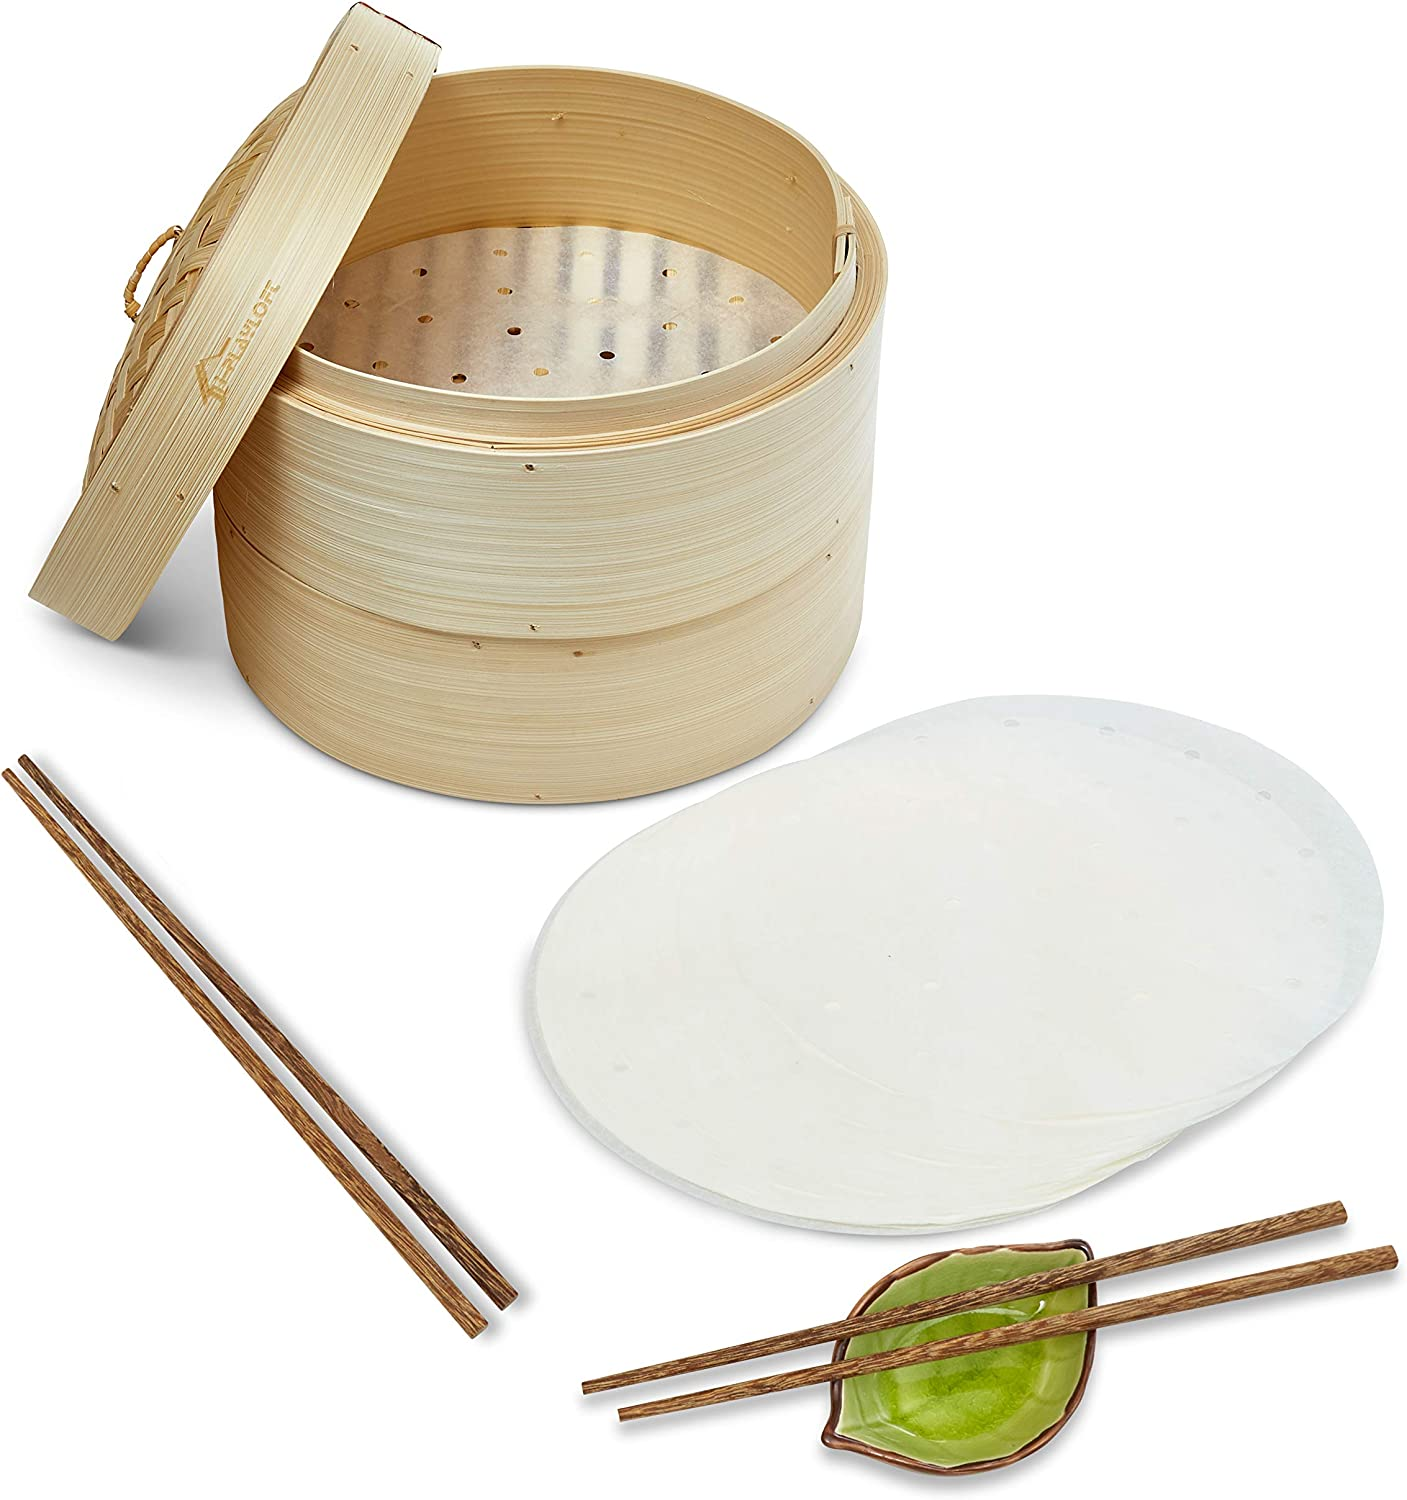 Premium Handmade Two Tier Bamboo Steamer Basket - Standard Depth - 10 Inch - Dim Sum Dumpling & Bao Bun Chinese Food Steamers - Asian Cooking Tools Set With Chopsticks & Sauce Plate - Steam Baskets For Rice, Vegetables & Fish